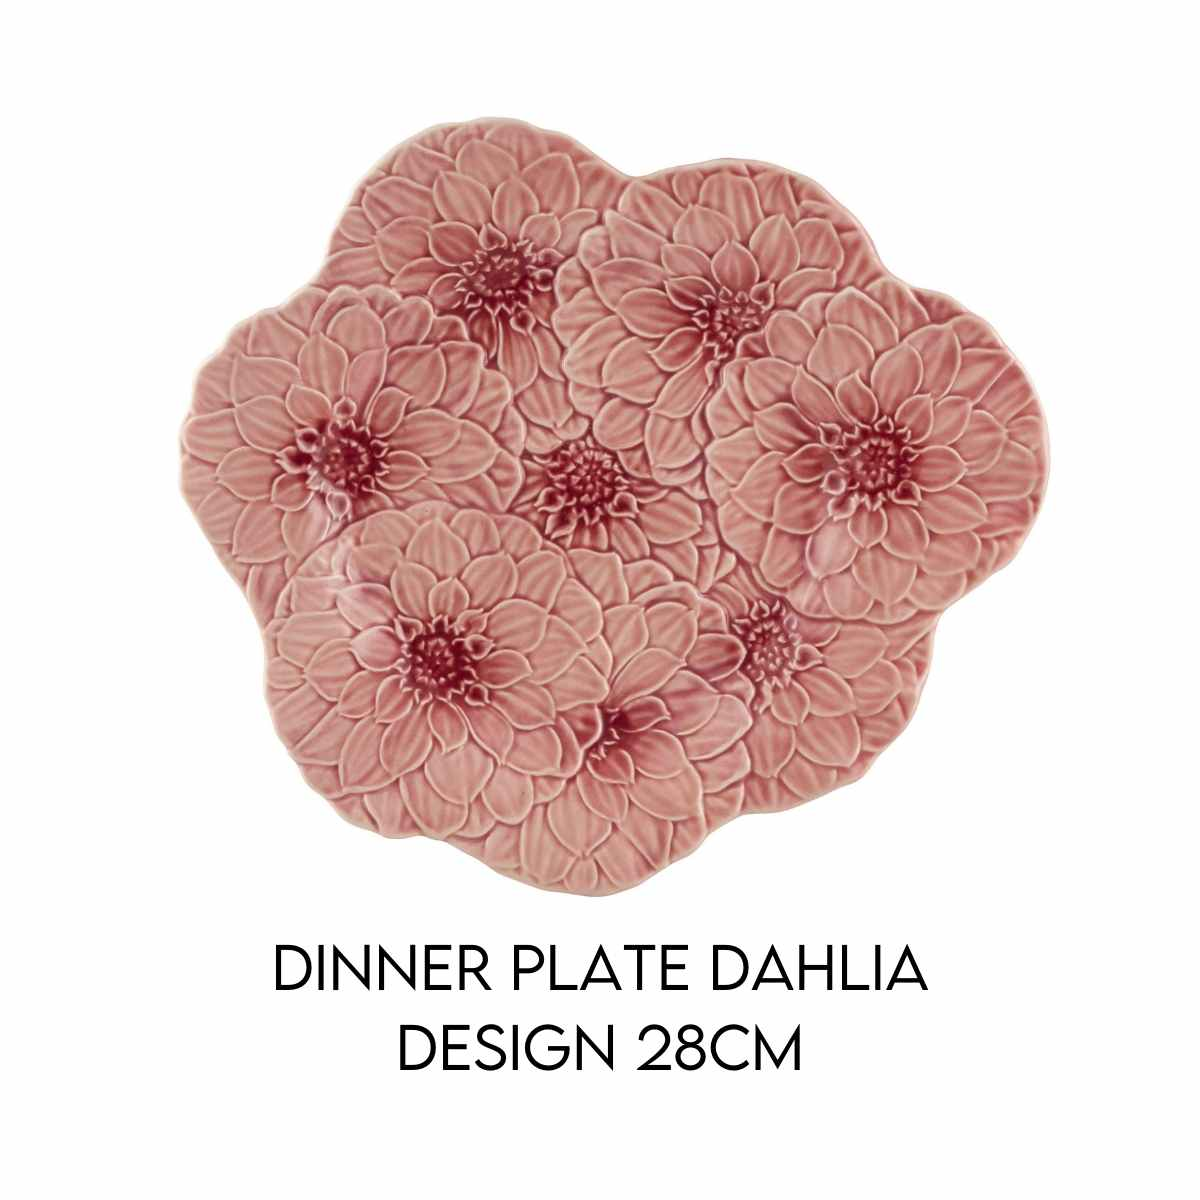 Hostaro Tableware Maria Flor dahlia dinner plate